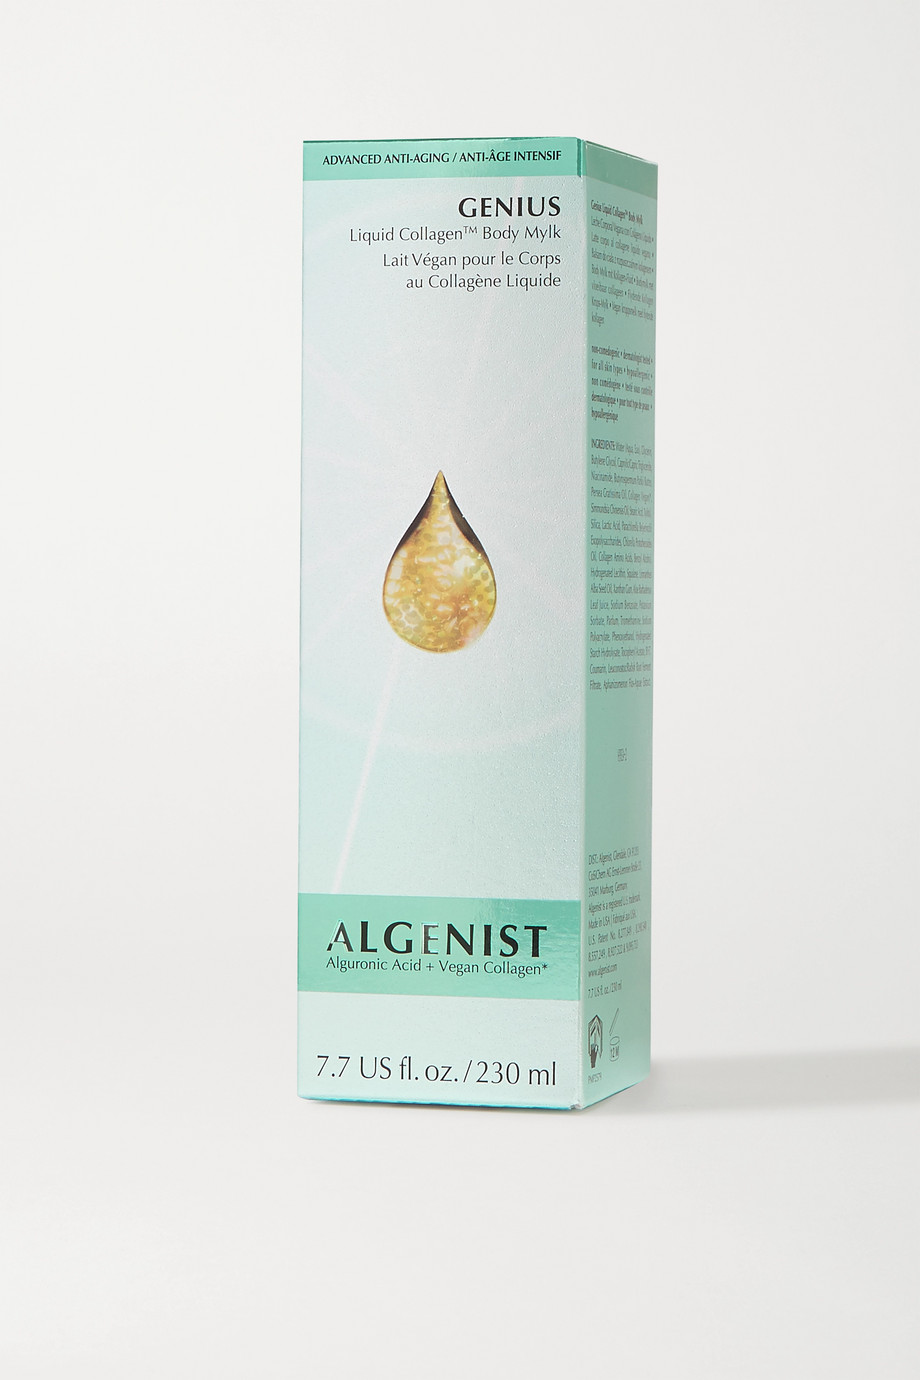 ALGENIST Genius Liquid Collagen Body Mylk, 230ml